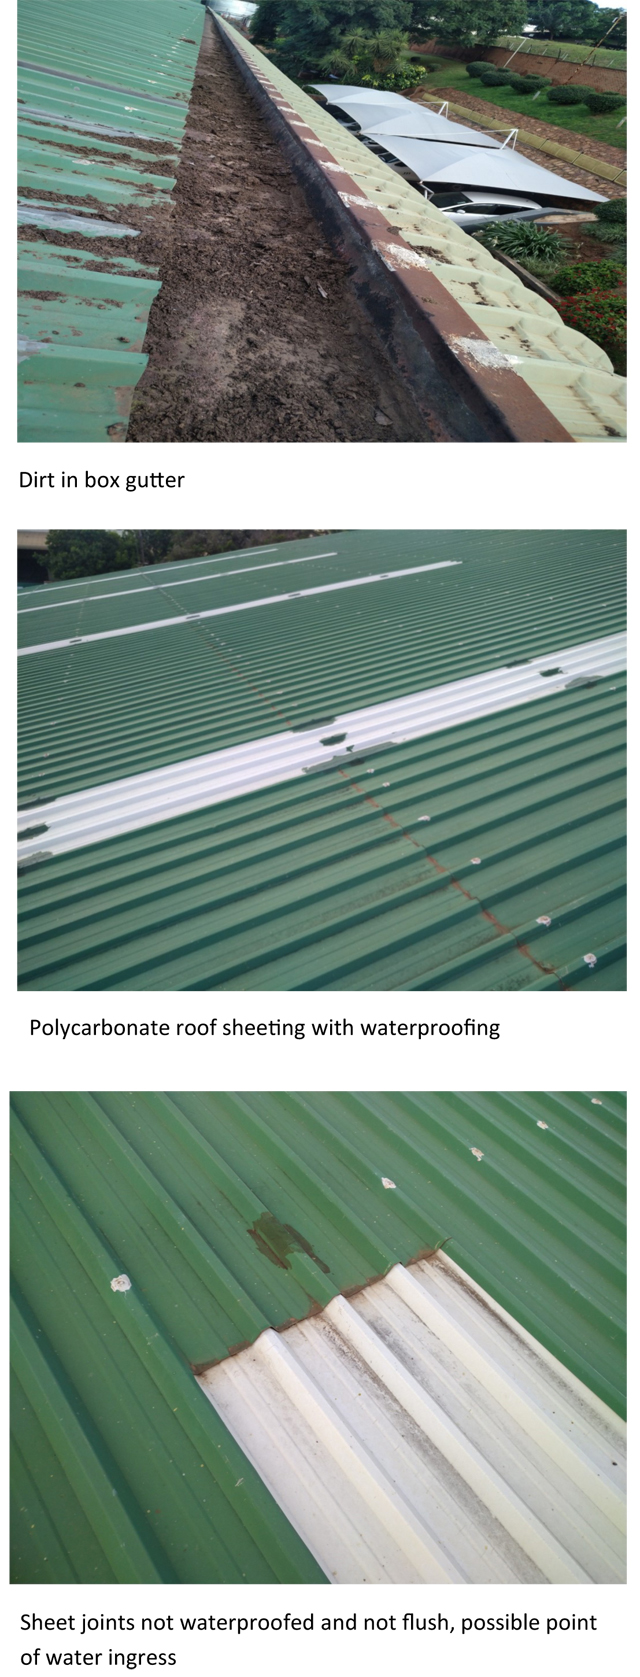 Roof Repair and Waterproofing Assessment – A Case Study